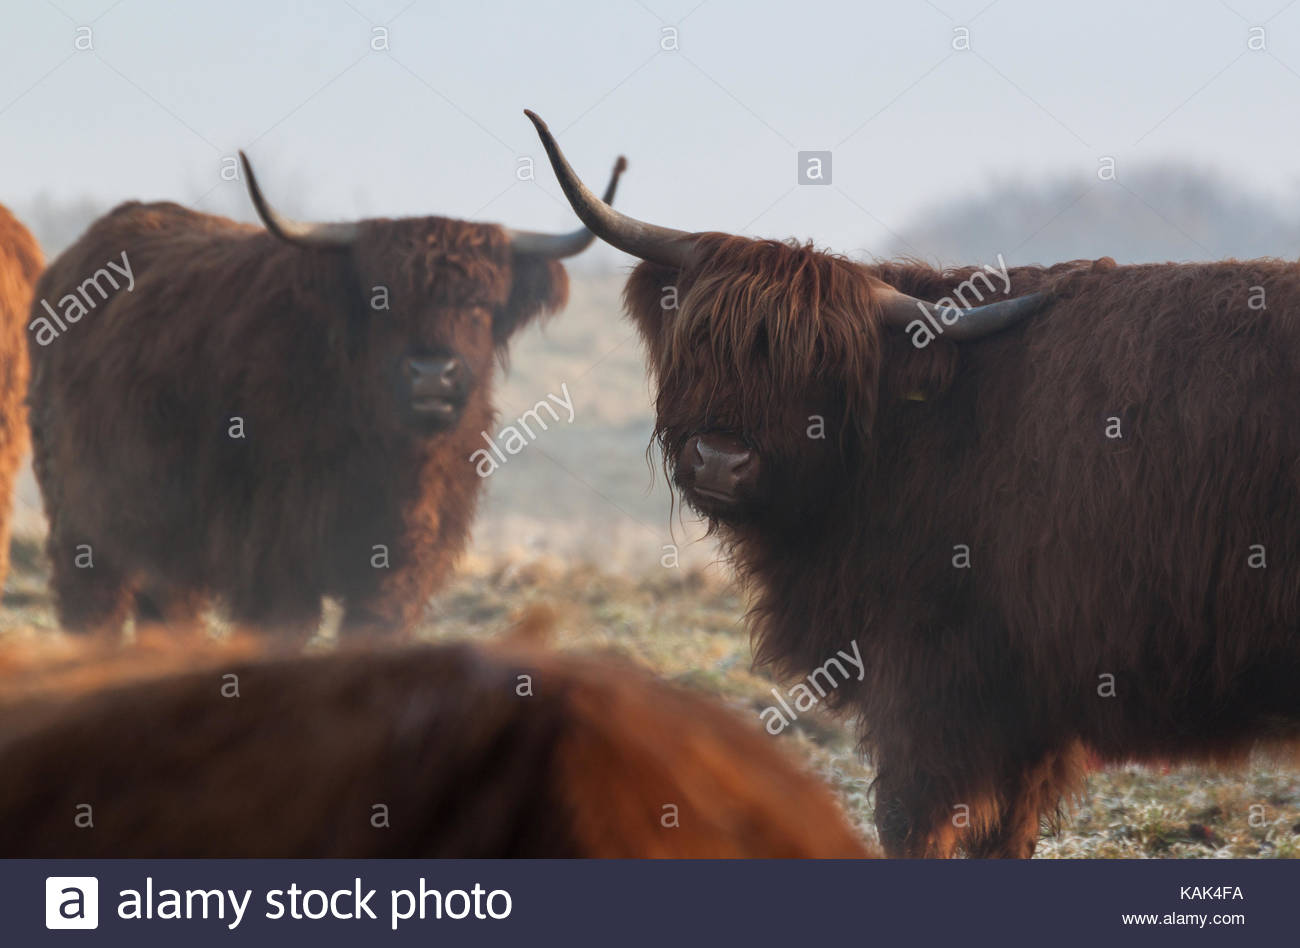 Highland cattles with long horns on a snowy field in winter. - Stock Image